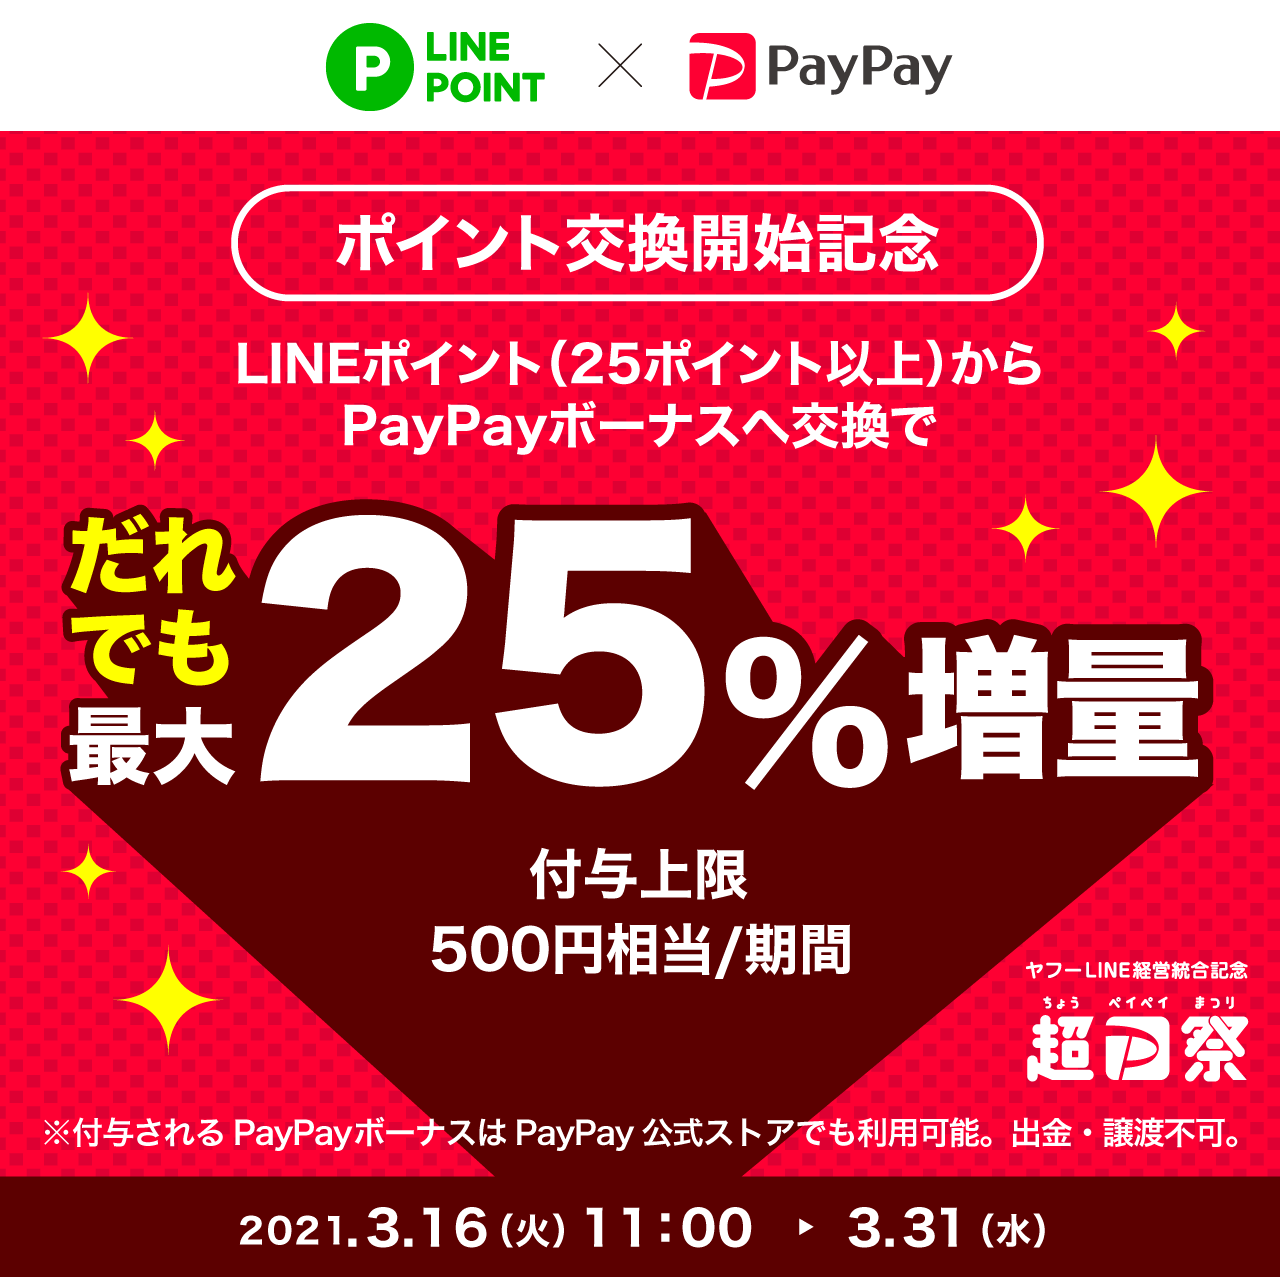 linepoint-paypay